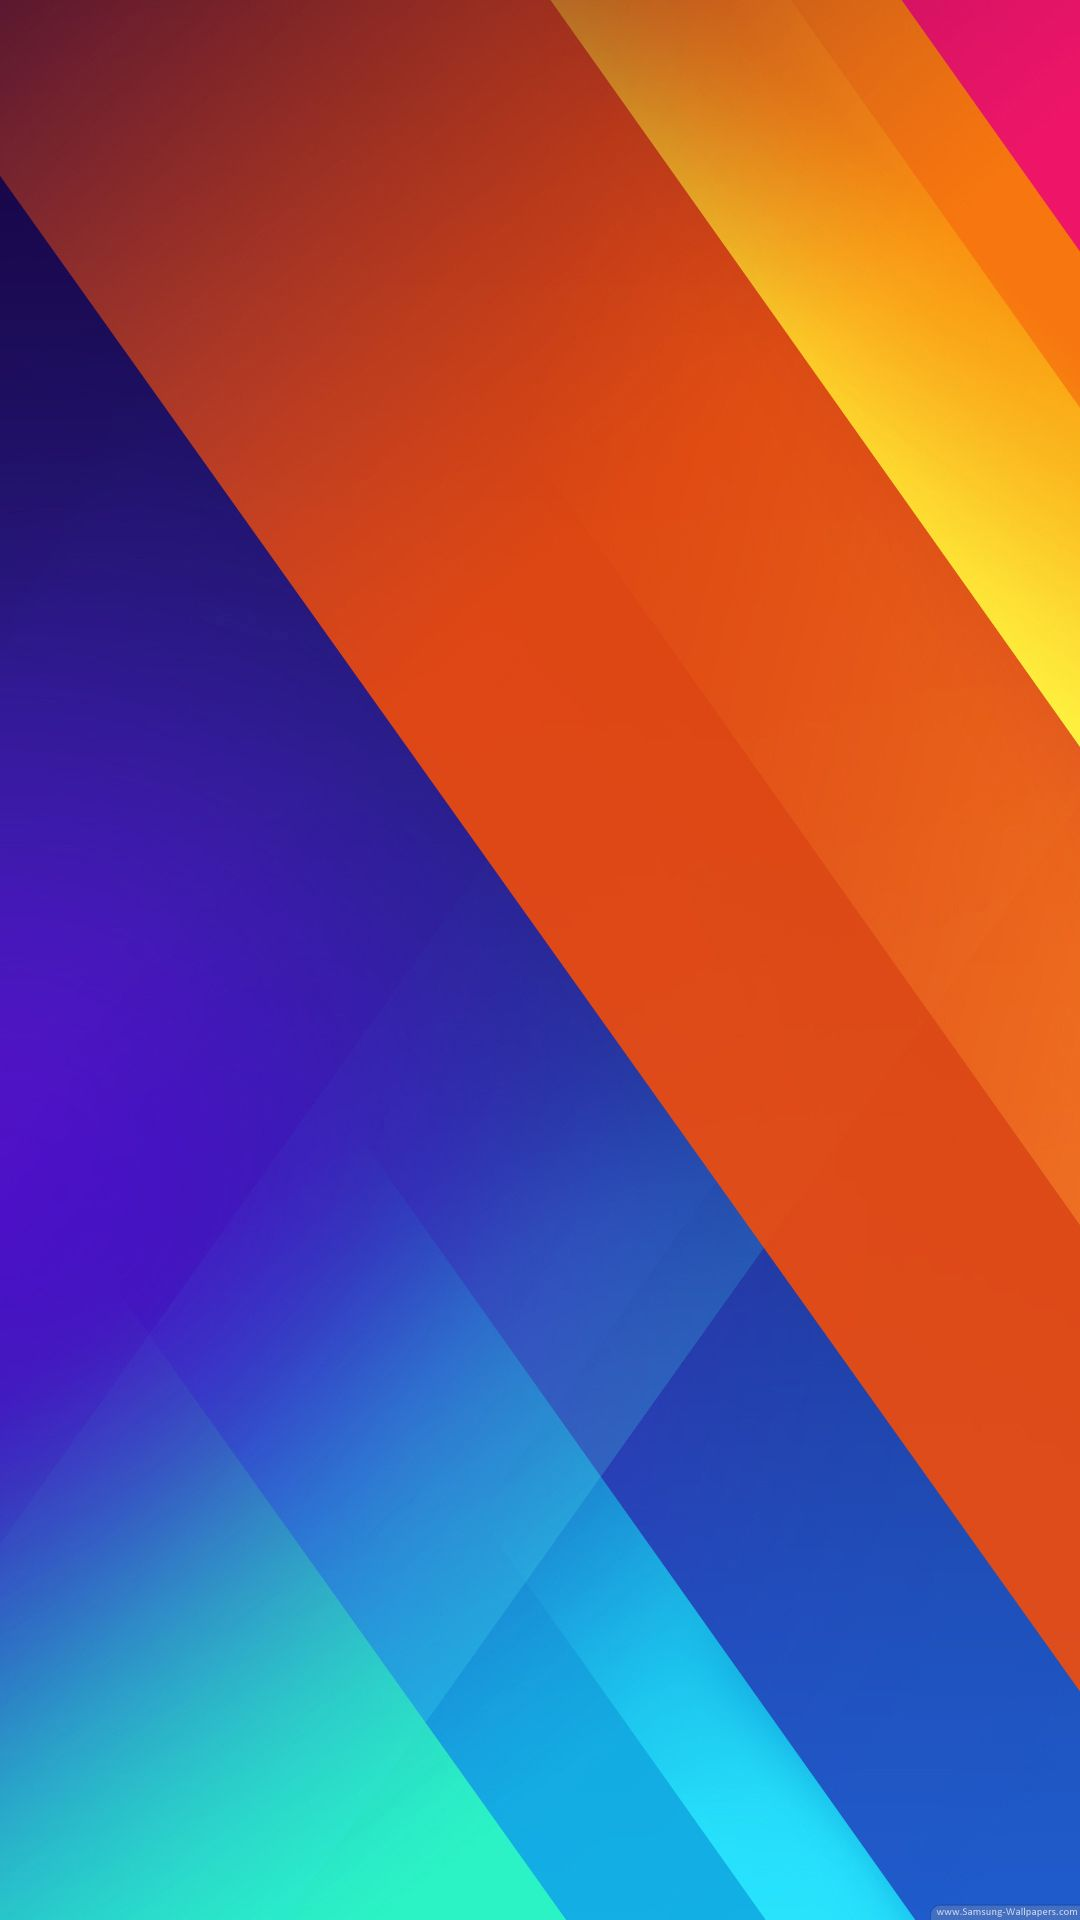 Color Change Lock Screen Android wallpaper, Abstract